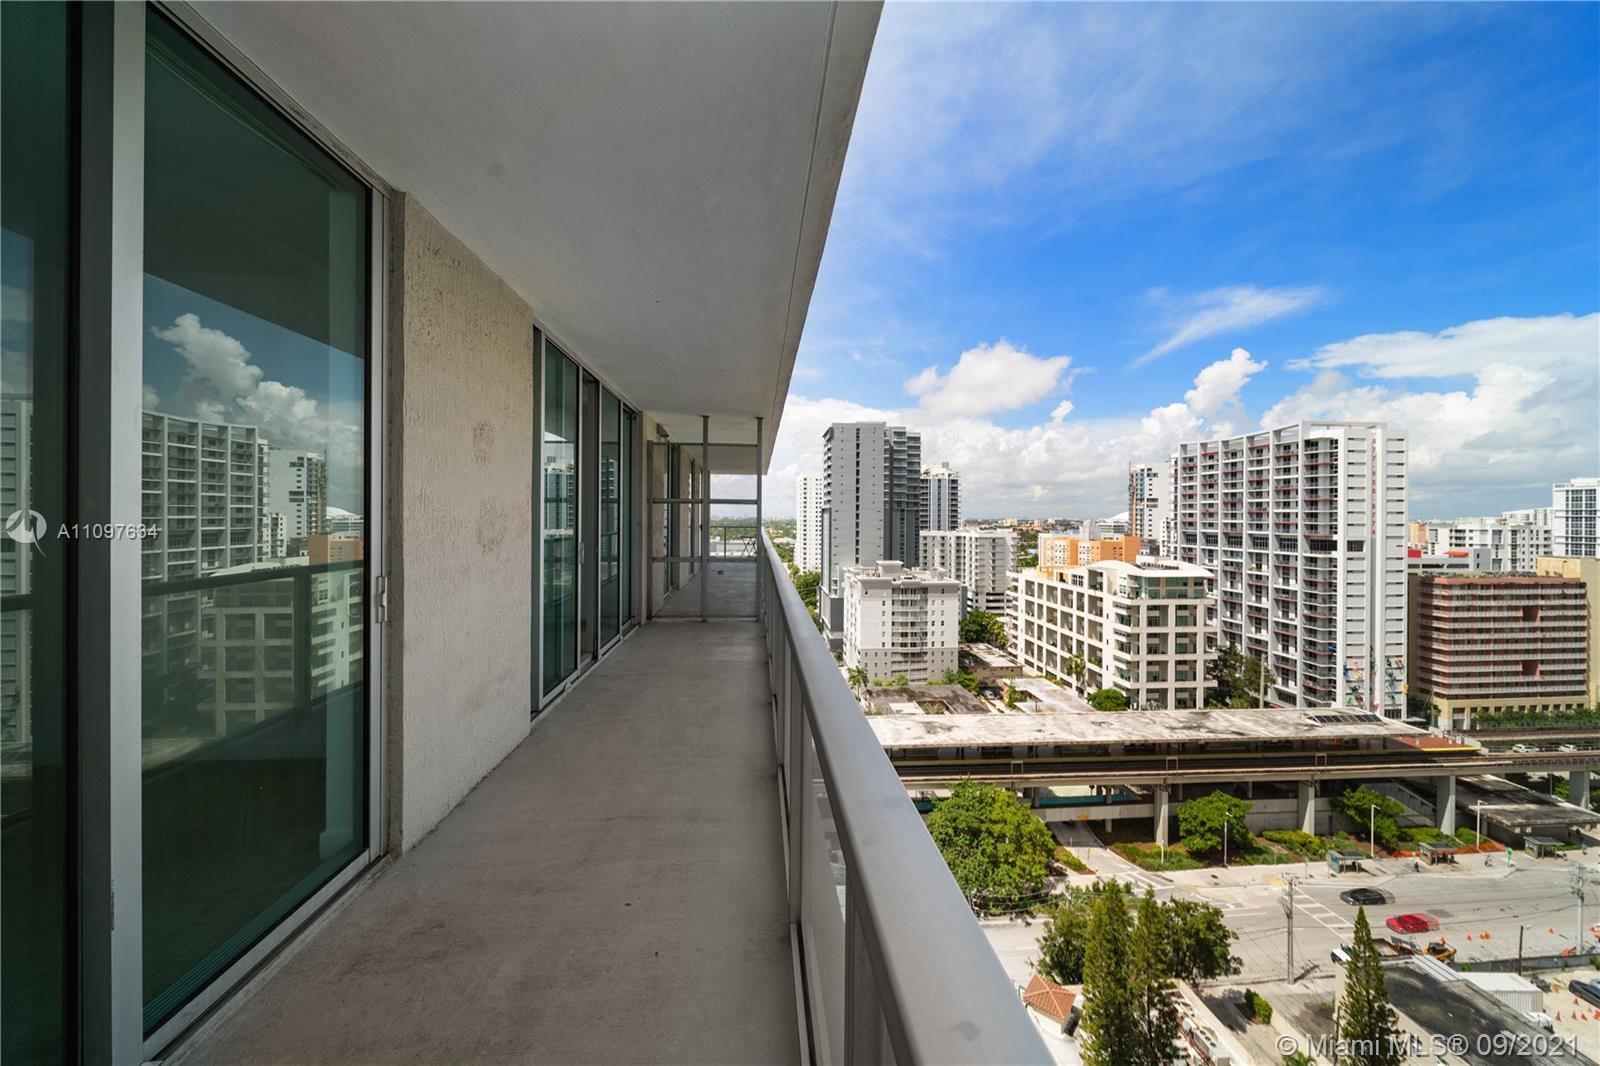 Axis on Brickell North Tower #1924-N - 1111 SW 1st Ave #1924-N, Miami, FL 33130